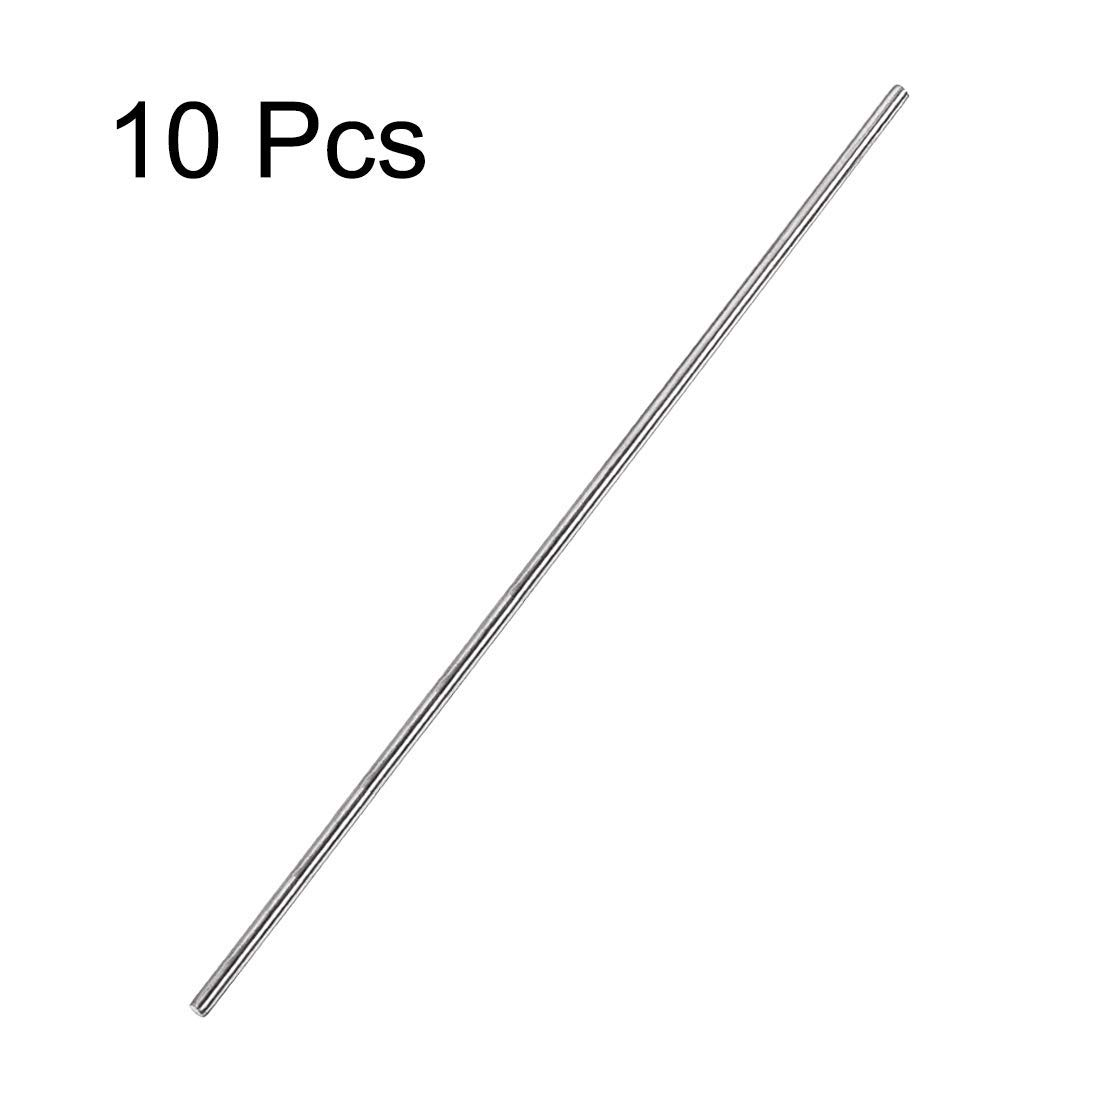 Round Stainless Steel 304 3mm x 300mm Round Rod for DIY Crafts 10 Pieces